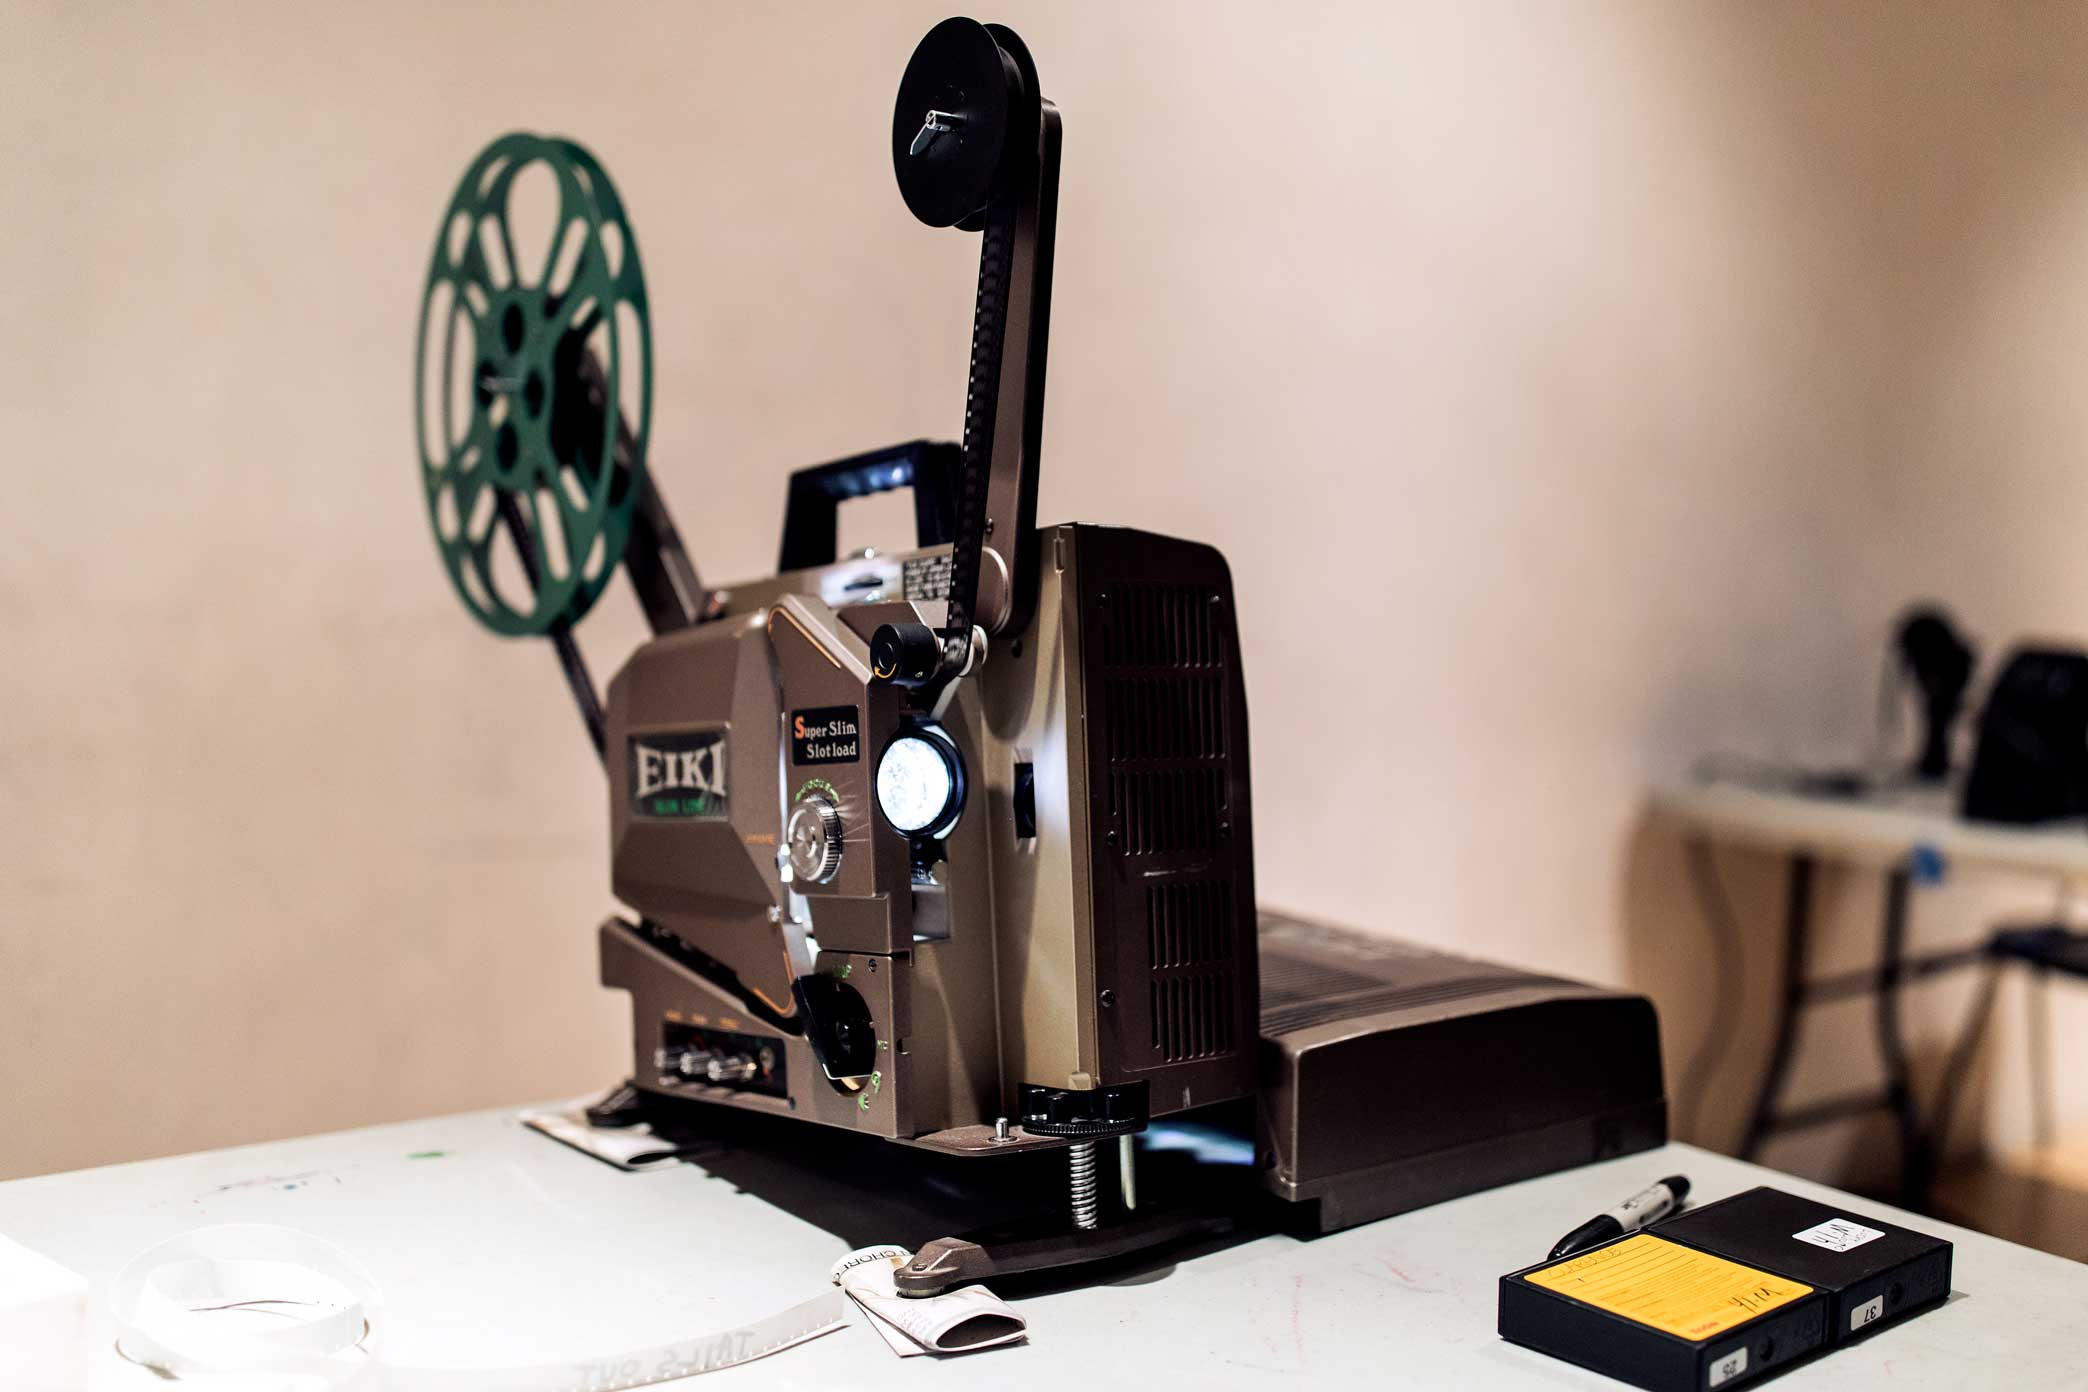 Eiki film projector at the Mono No Aware workshop space in Brooklyn.